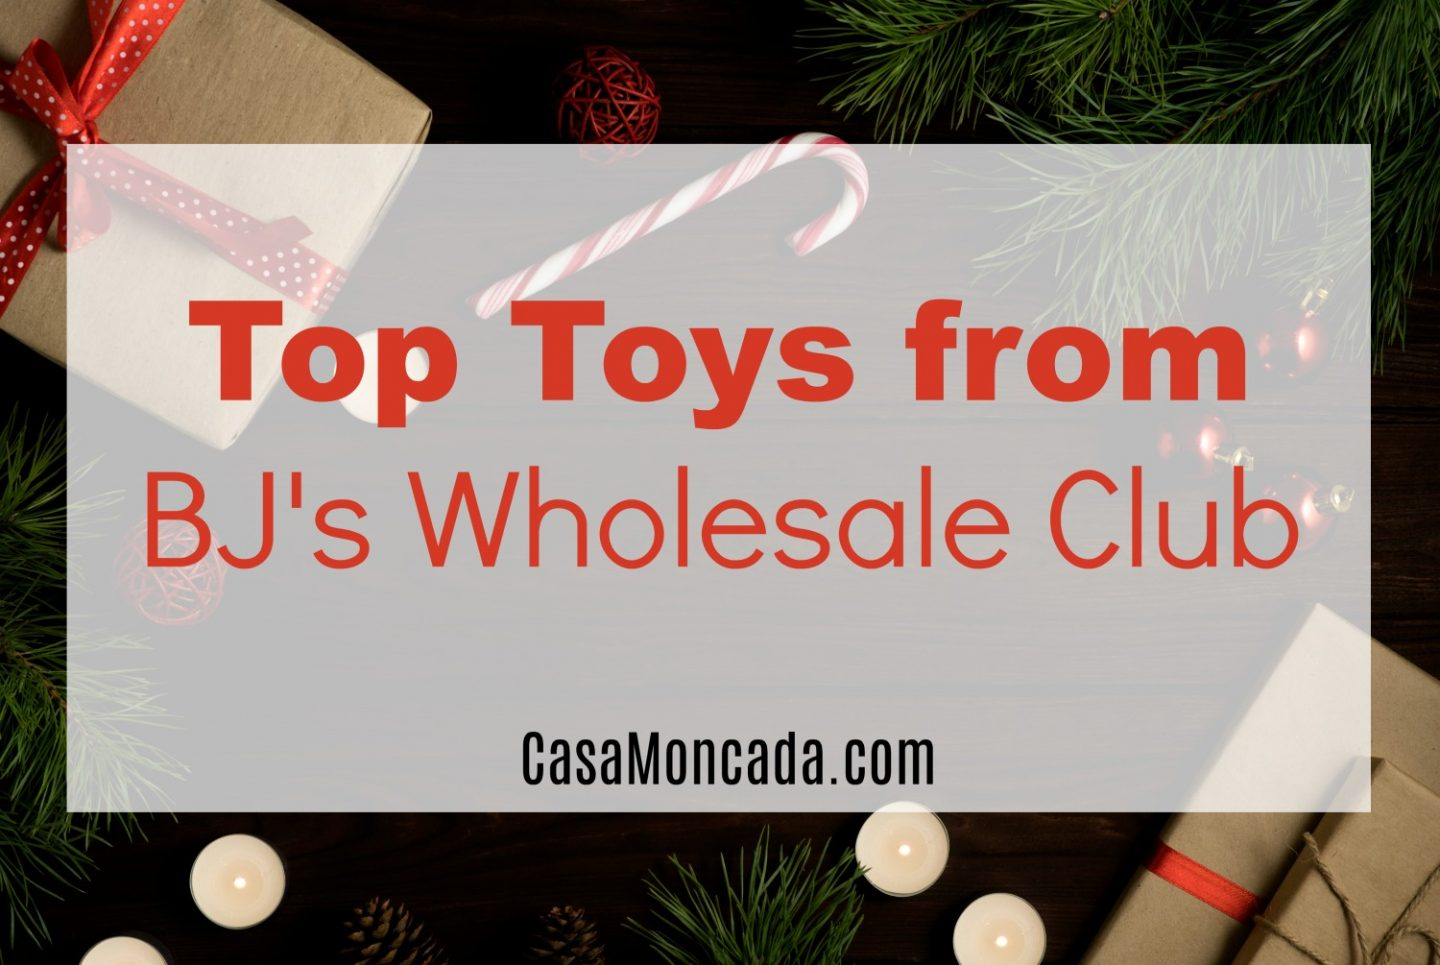 Top Toys from BJ's